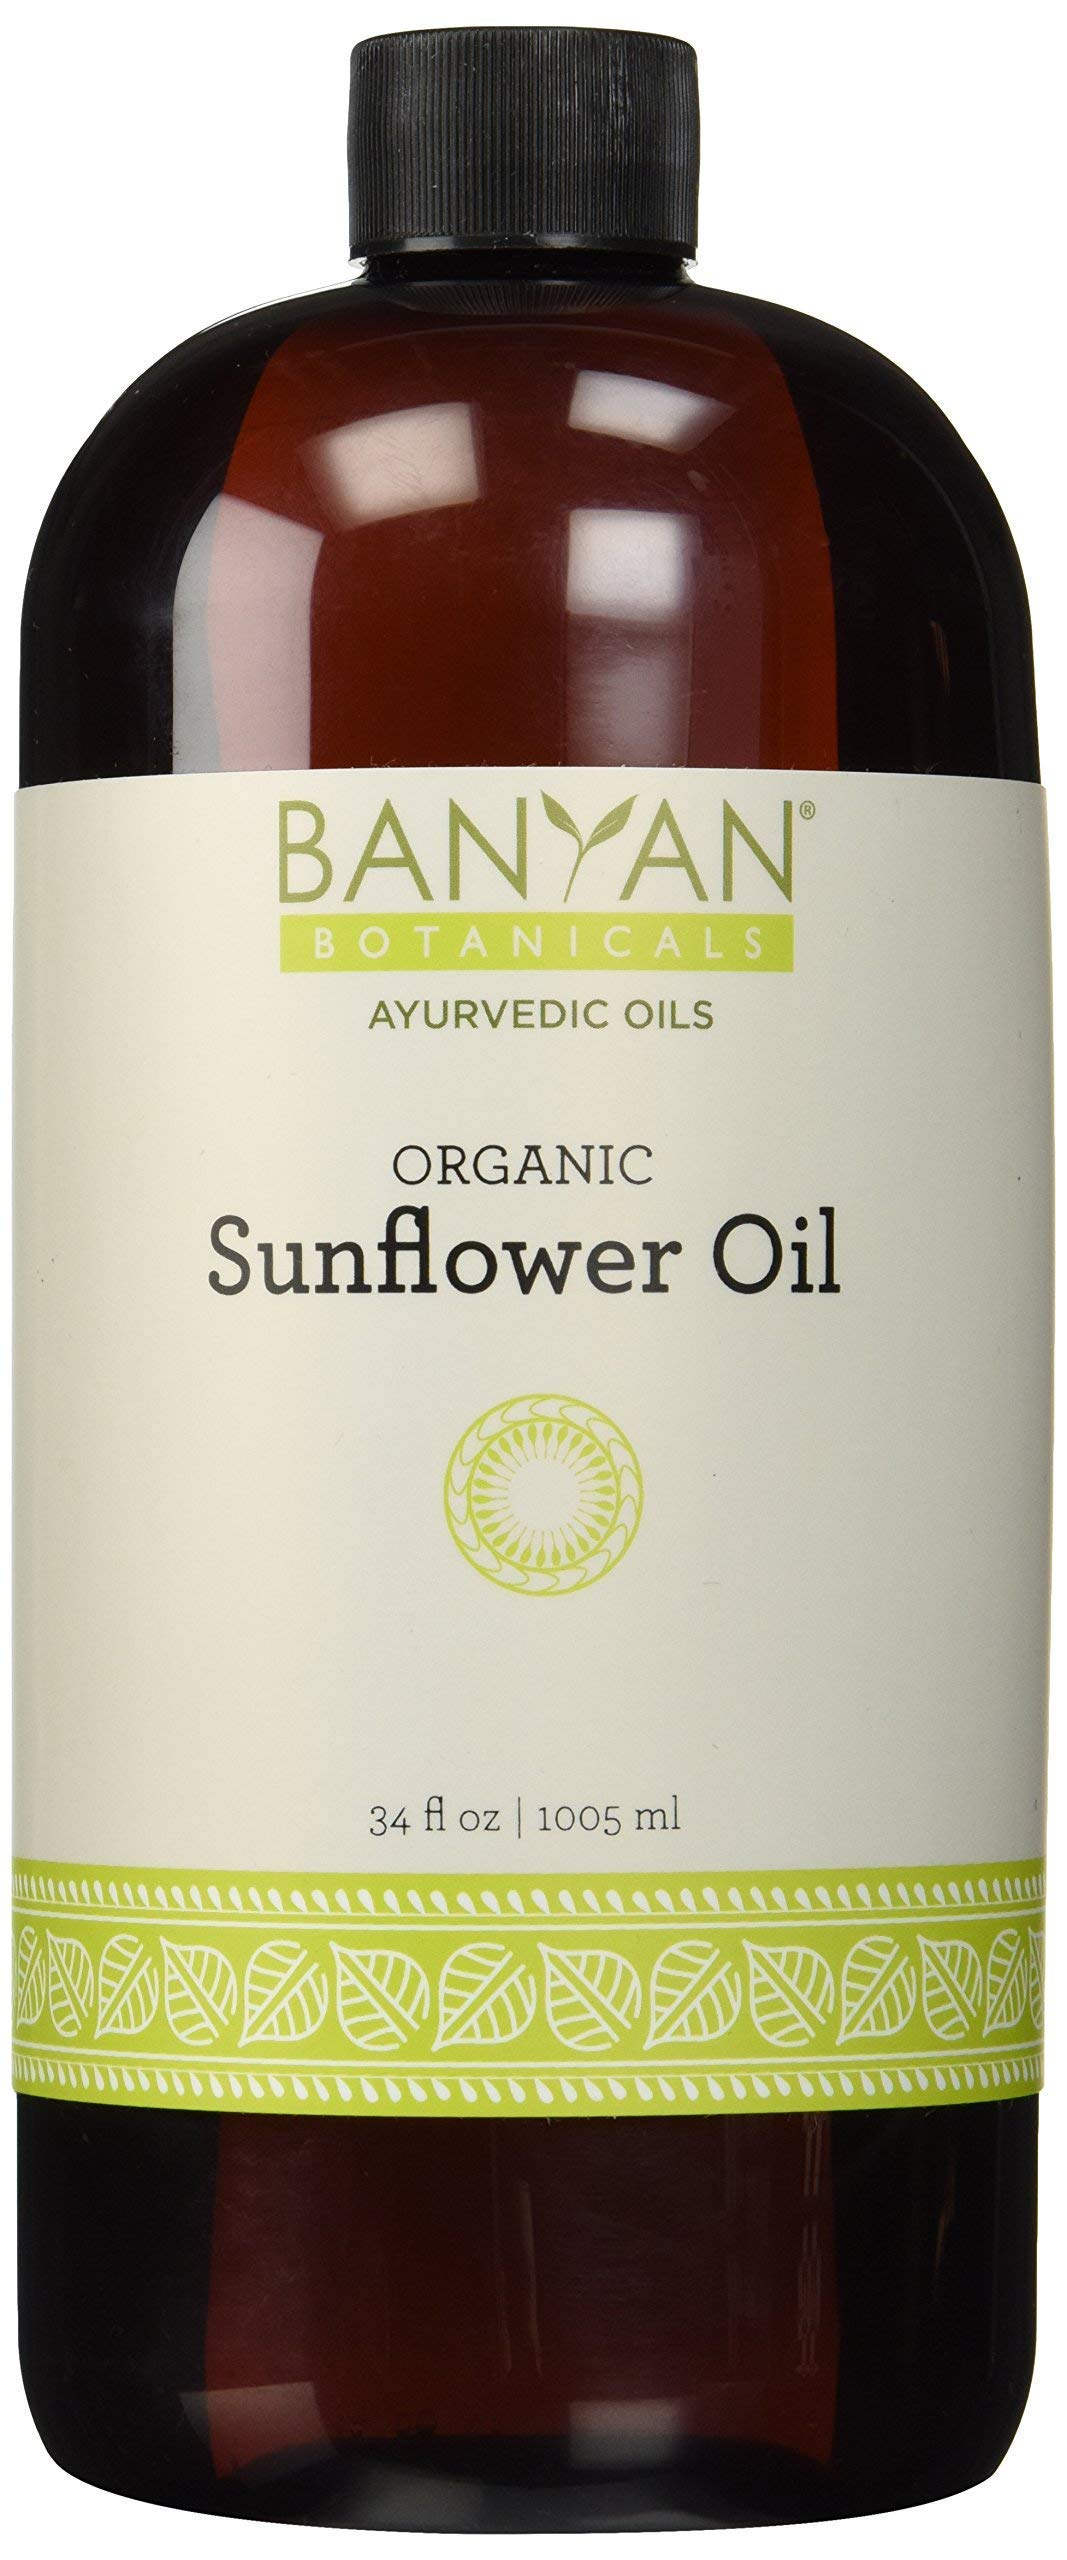 Banyan Botanicals Sunflower Oil - USDA Organic, 34 oz- Traditional Ayurvedic Oil for Massage, 100% Pure - Lightweight Carrier Oil by Banyan Botanicals